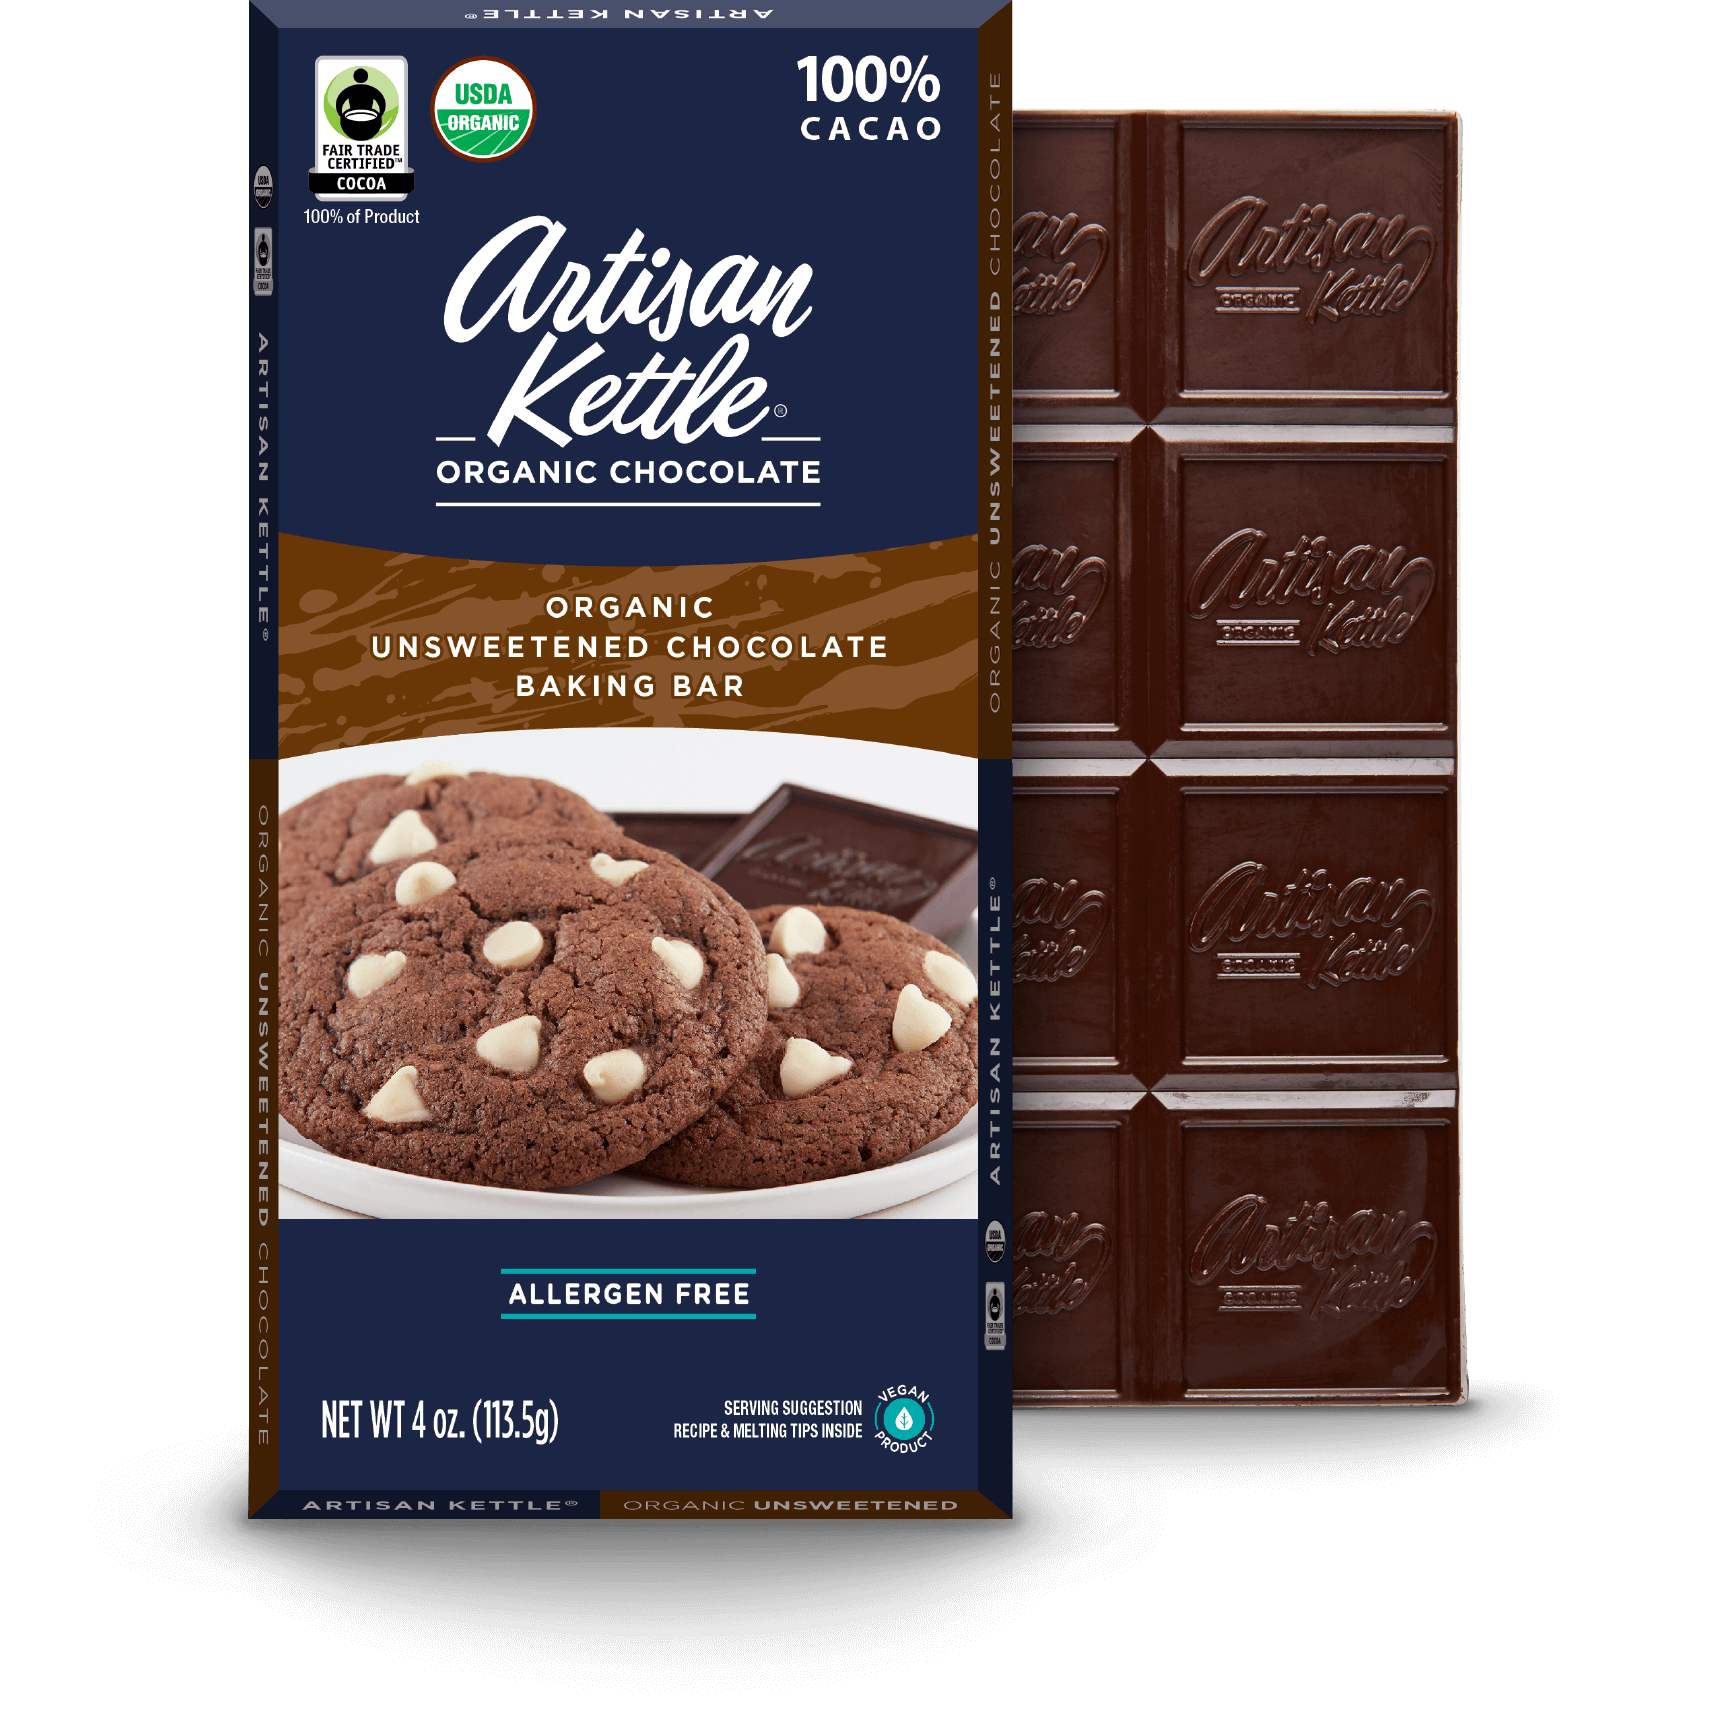 Organic Unsweetened Chocolate Baking Bar